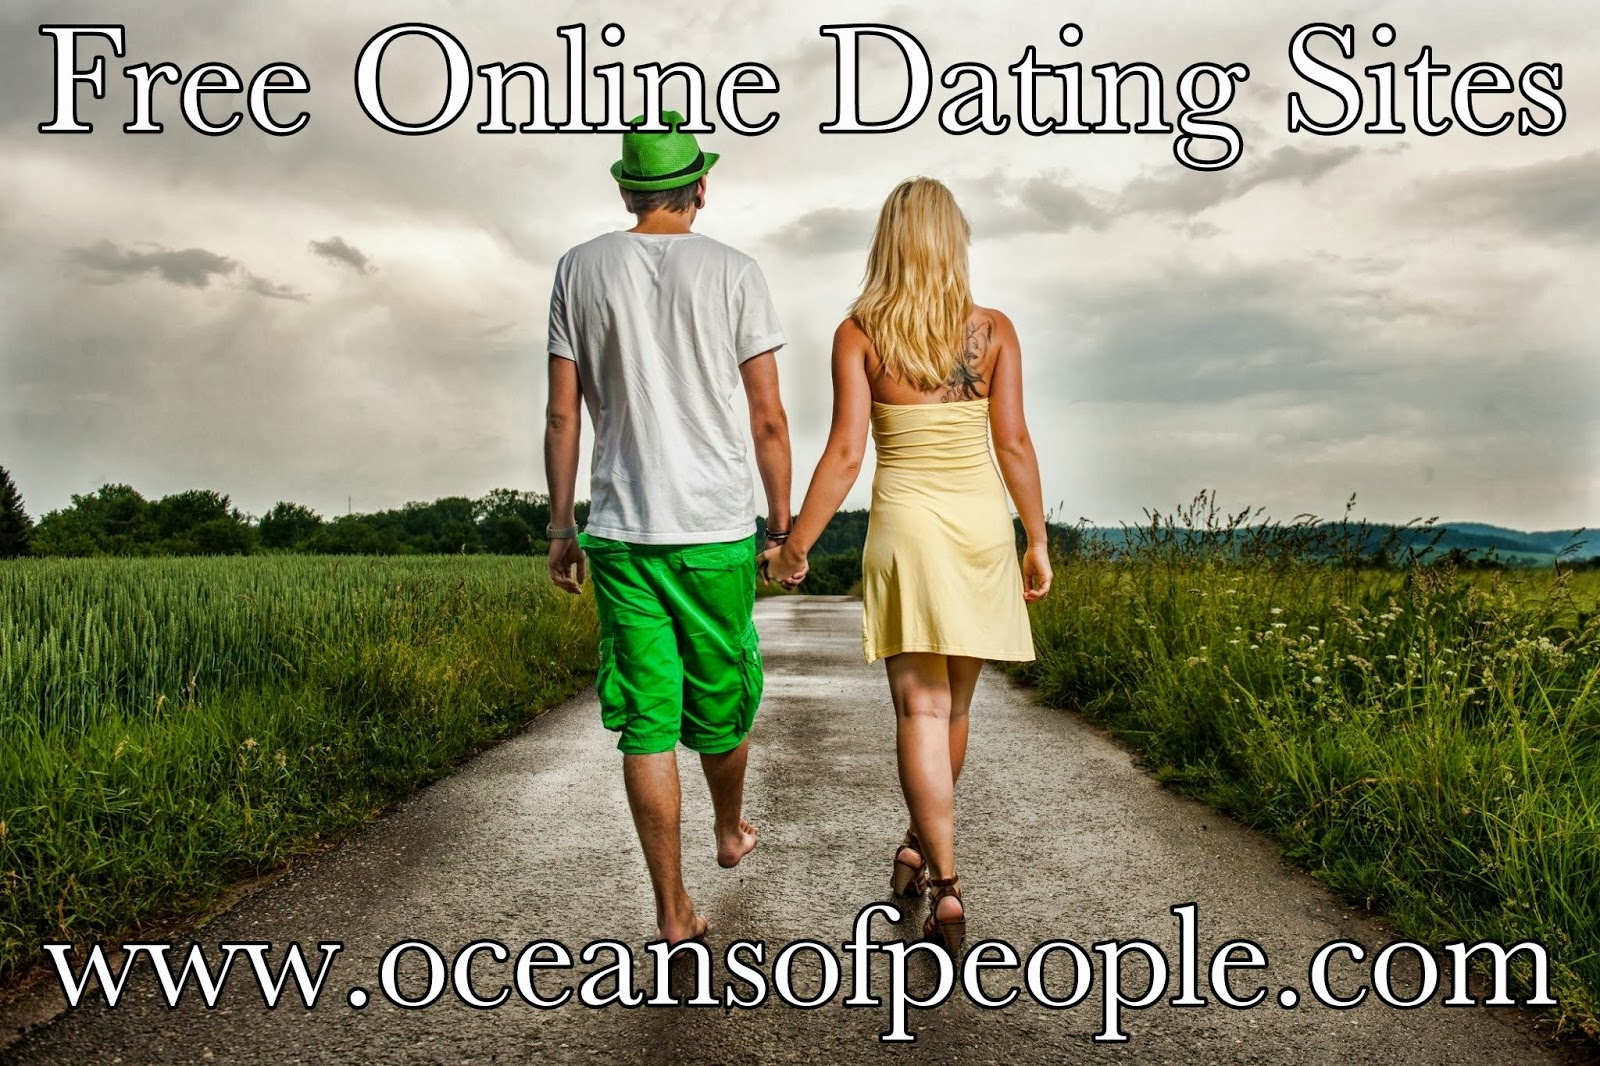 Free dating sites in ma